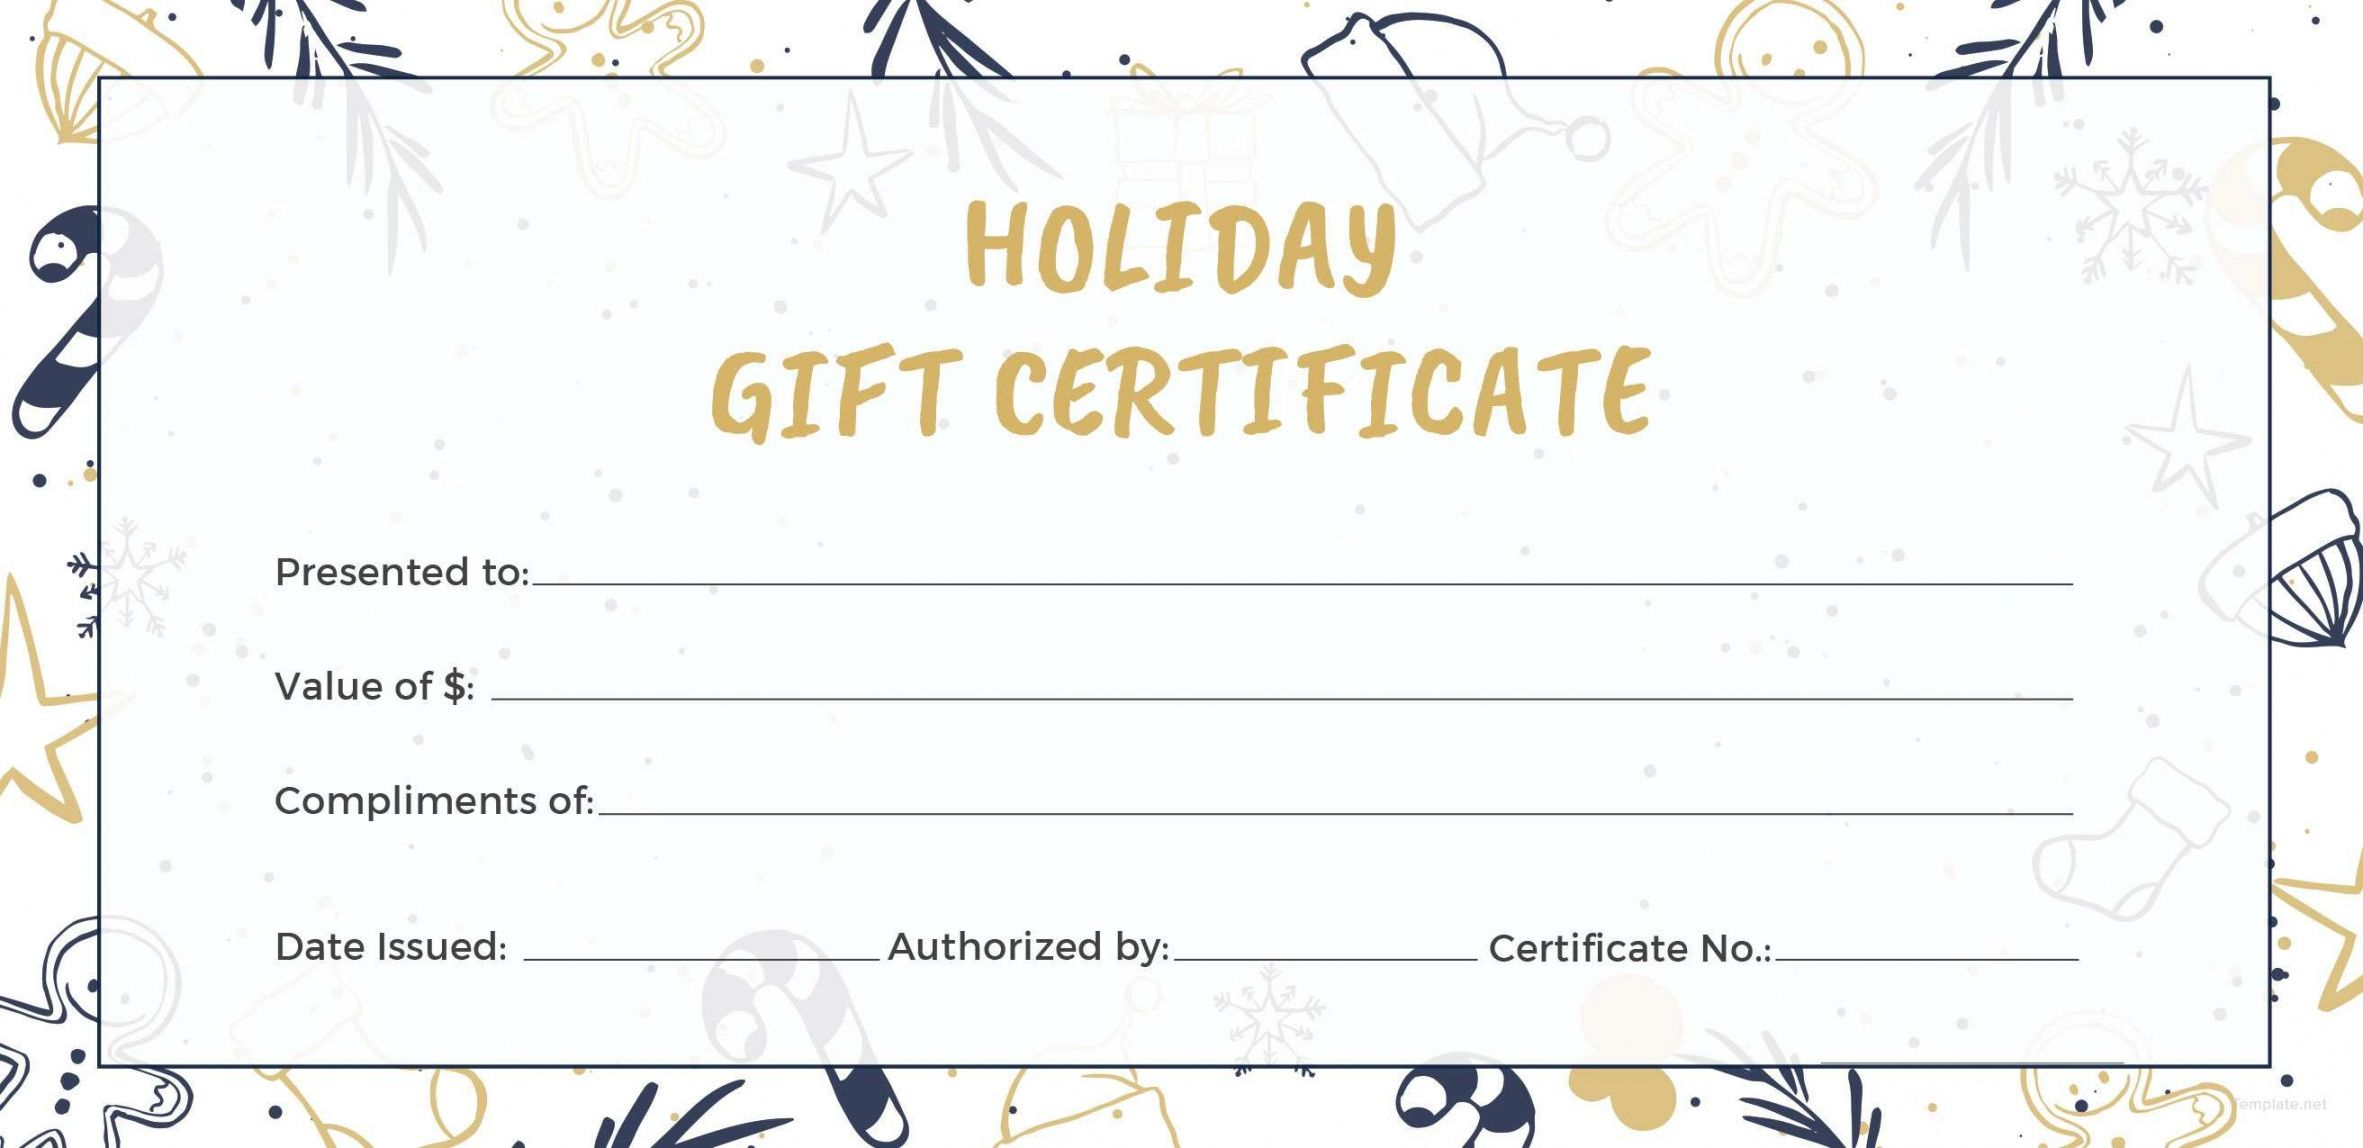 editable holiday gift certificate fast car wash gift